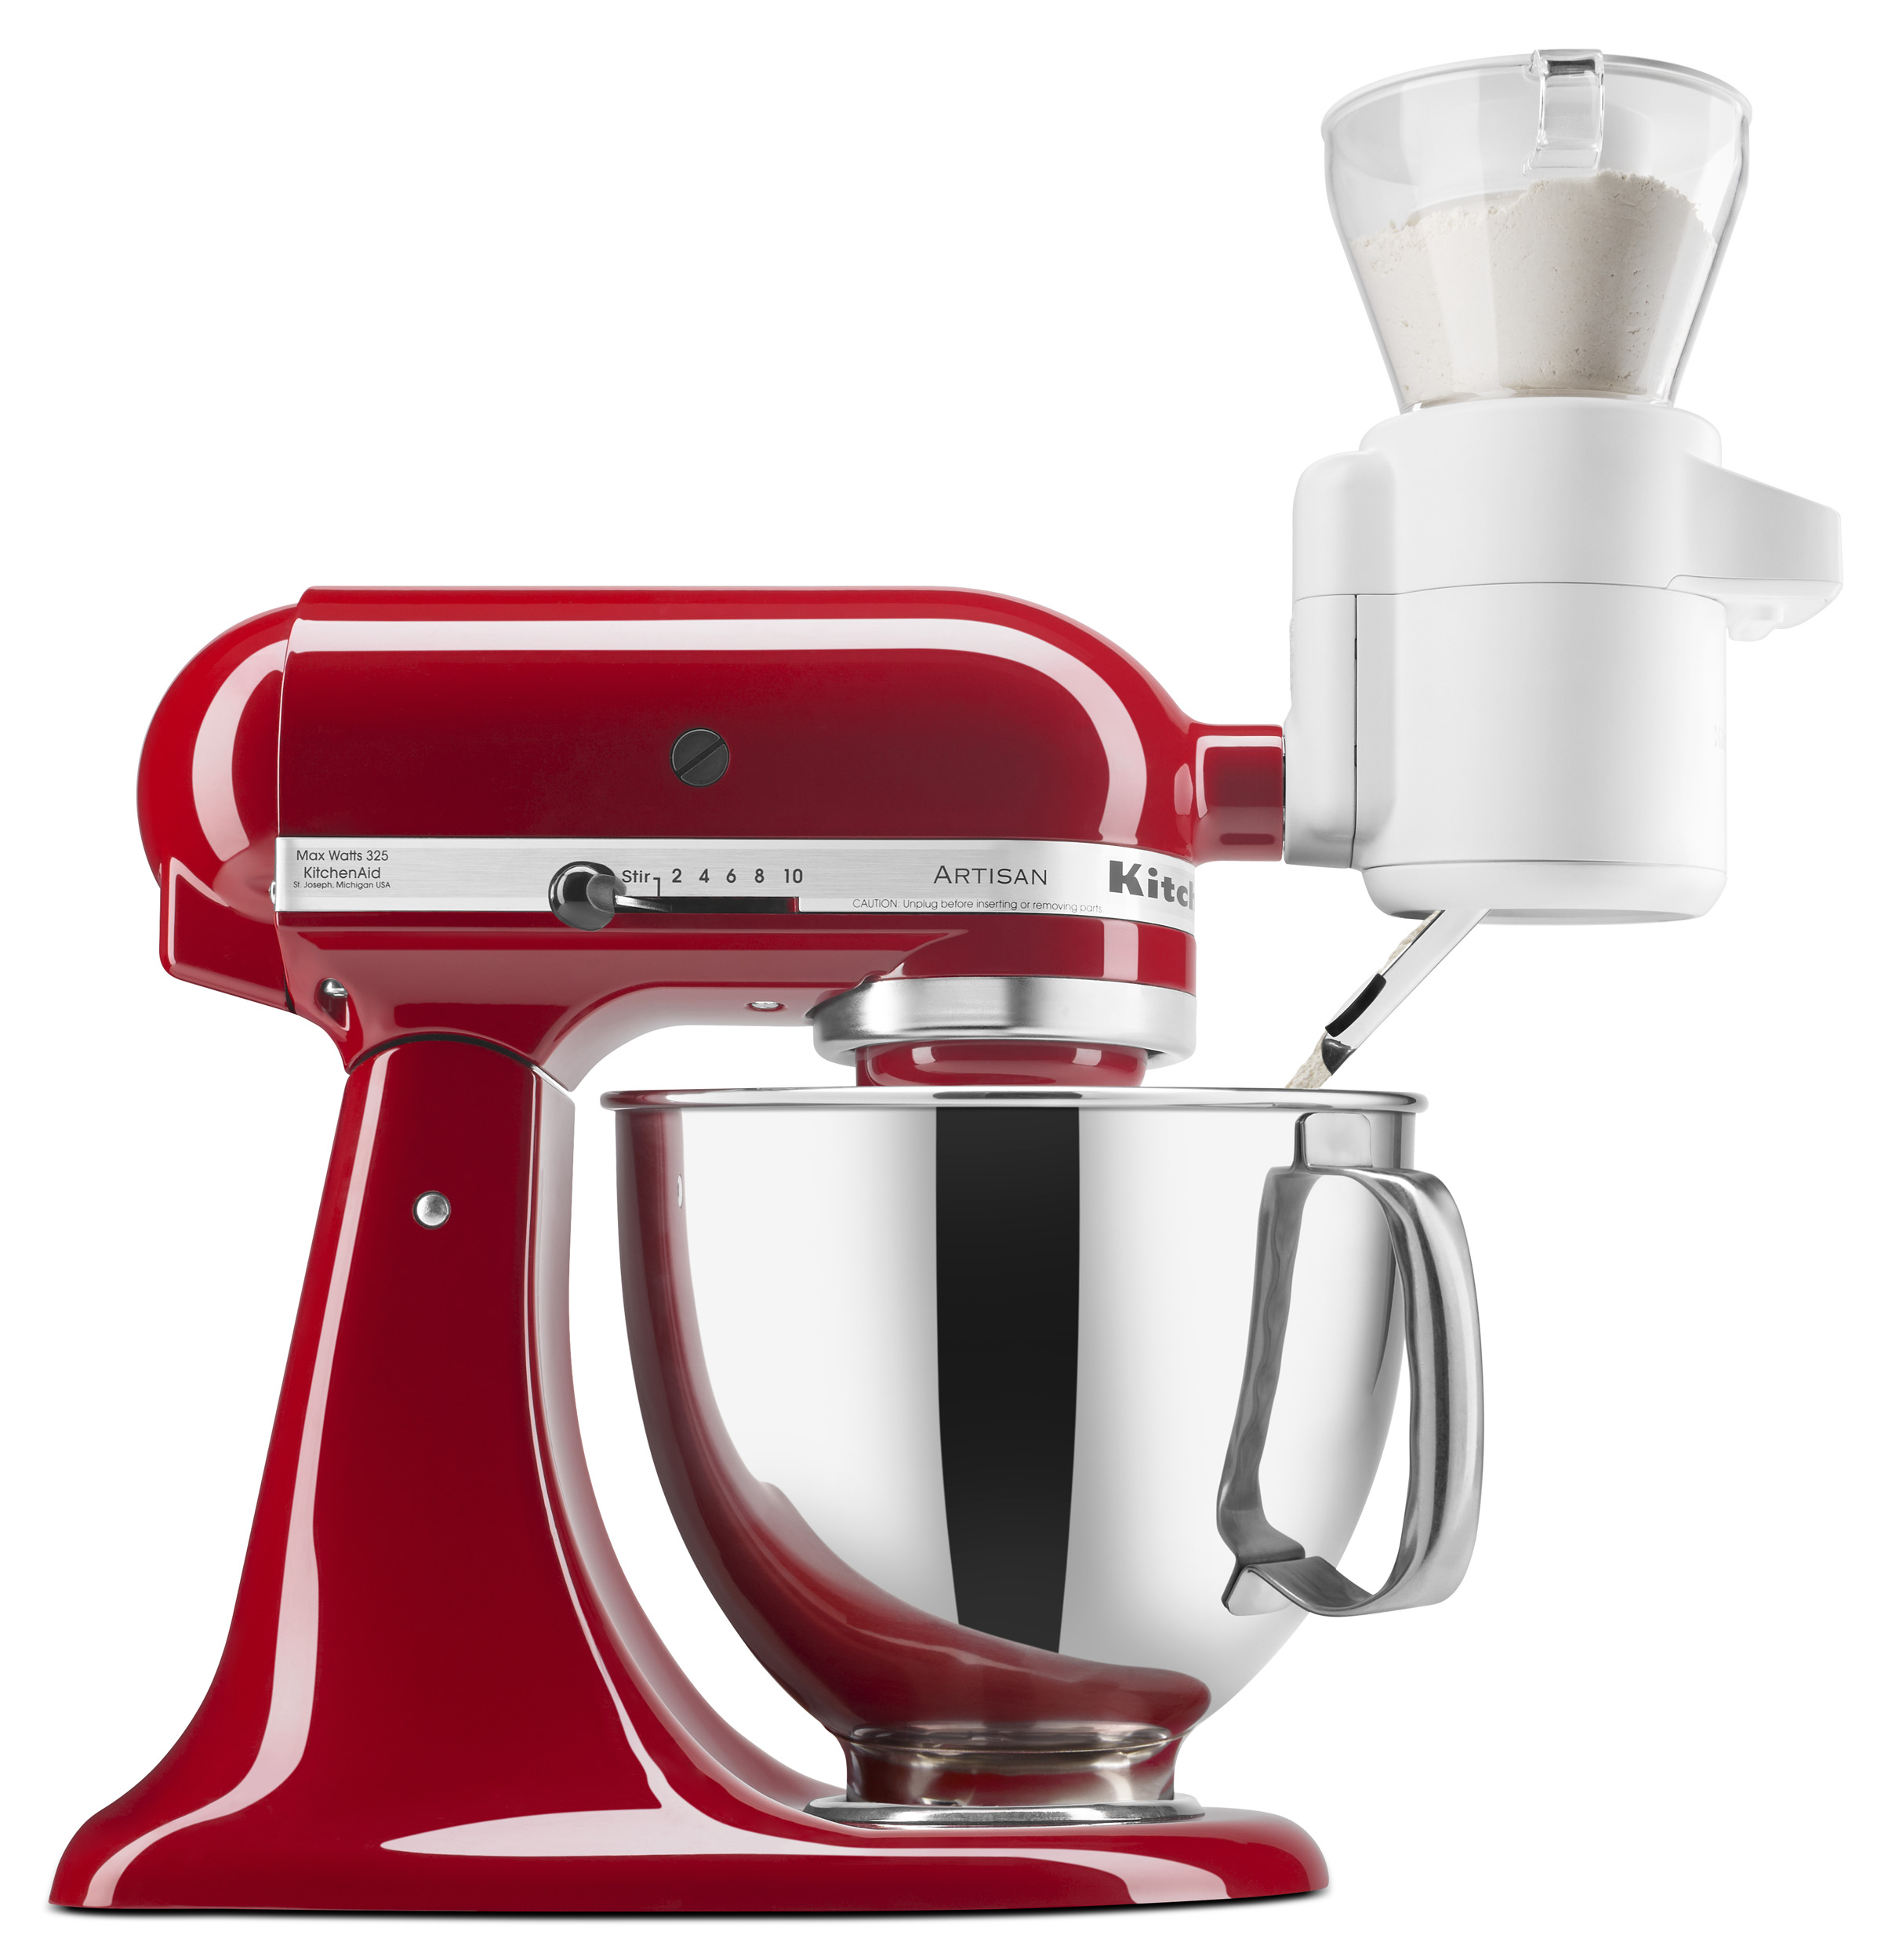 press room get the scoop and dish it out rh news kitchenaid com